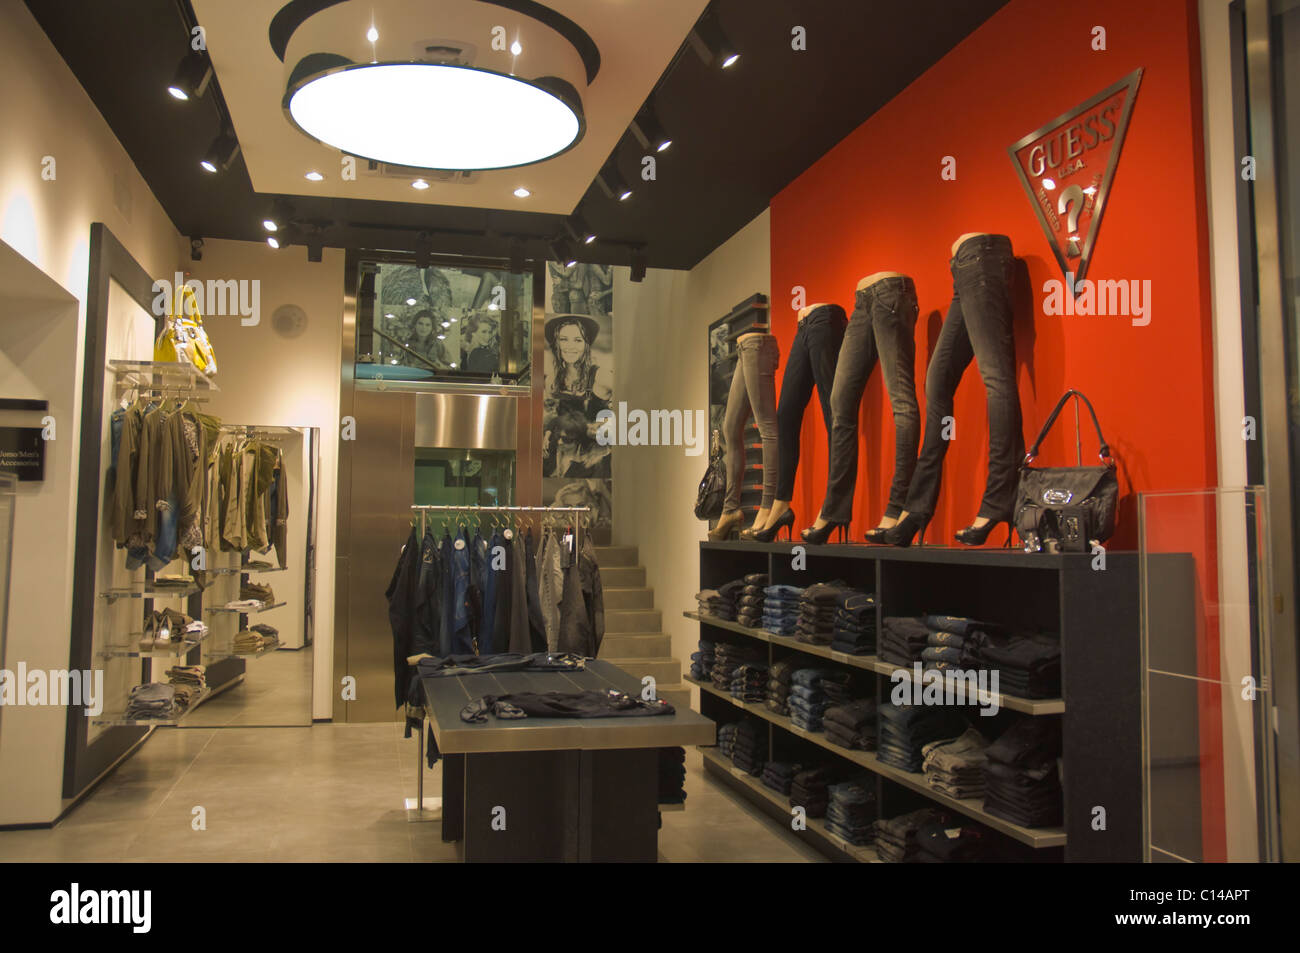 Guess Clothing Store Stock Photos & Guess Clothing Store